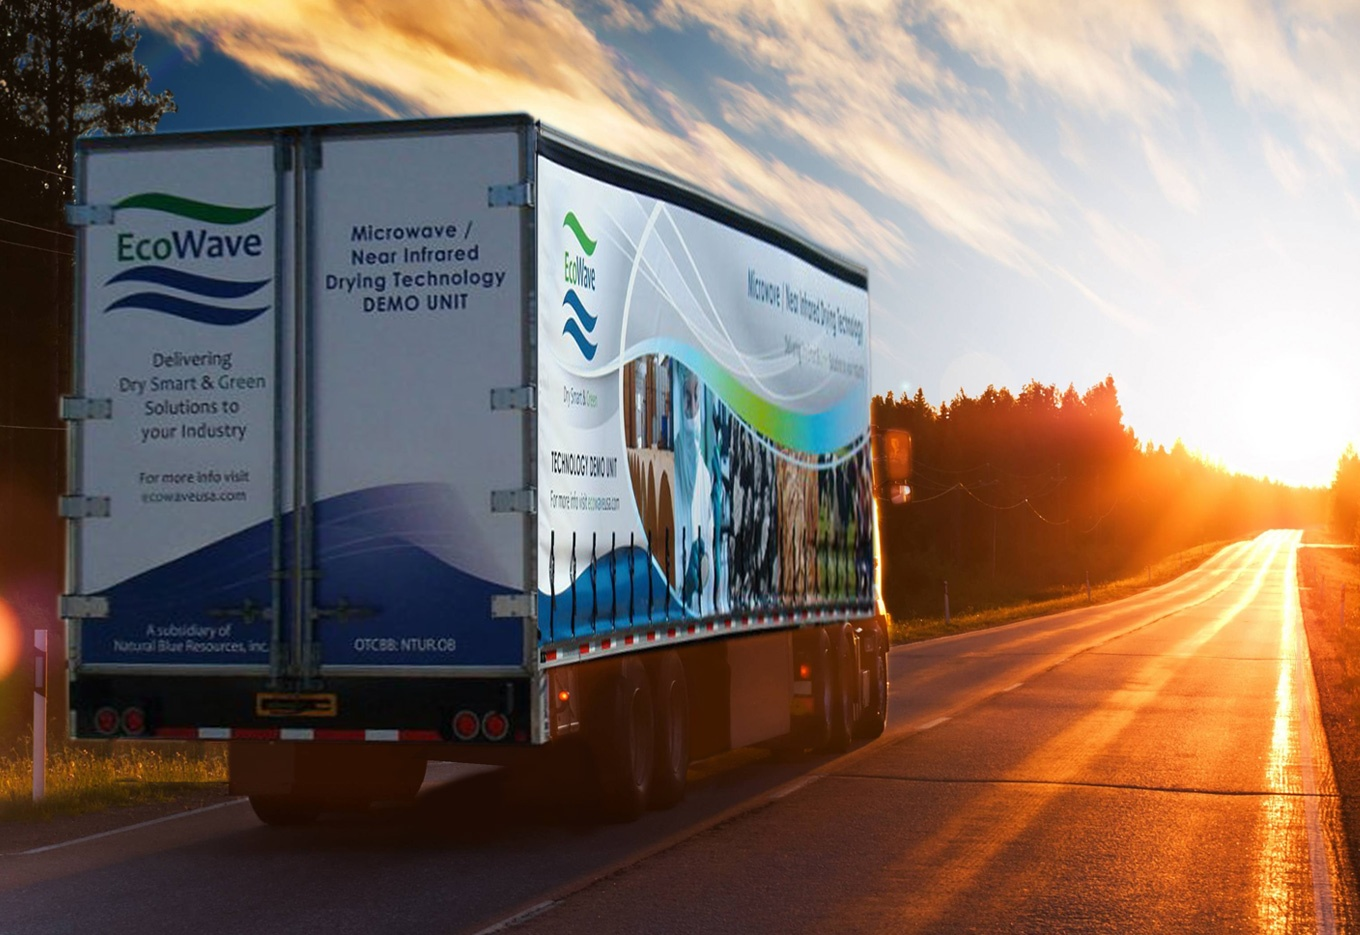 Roland Curtains - Curtainside Solutions Engineered to Lighten Your Load